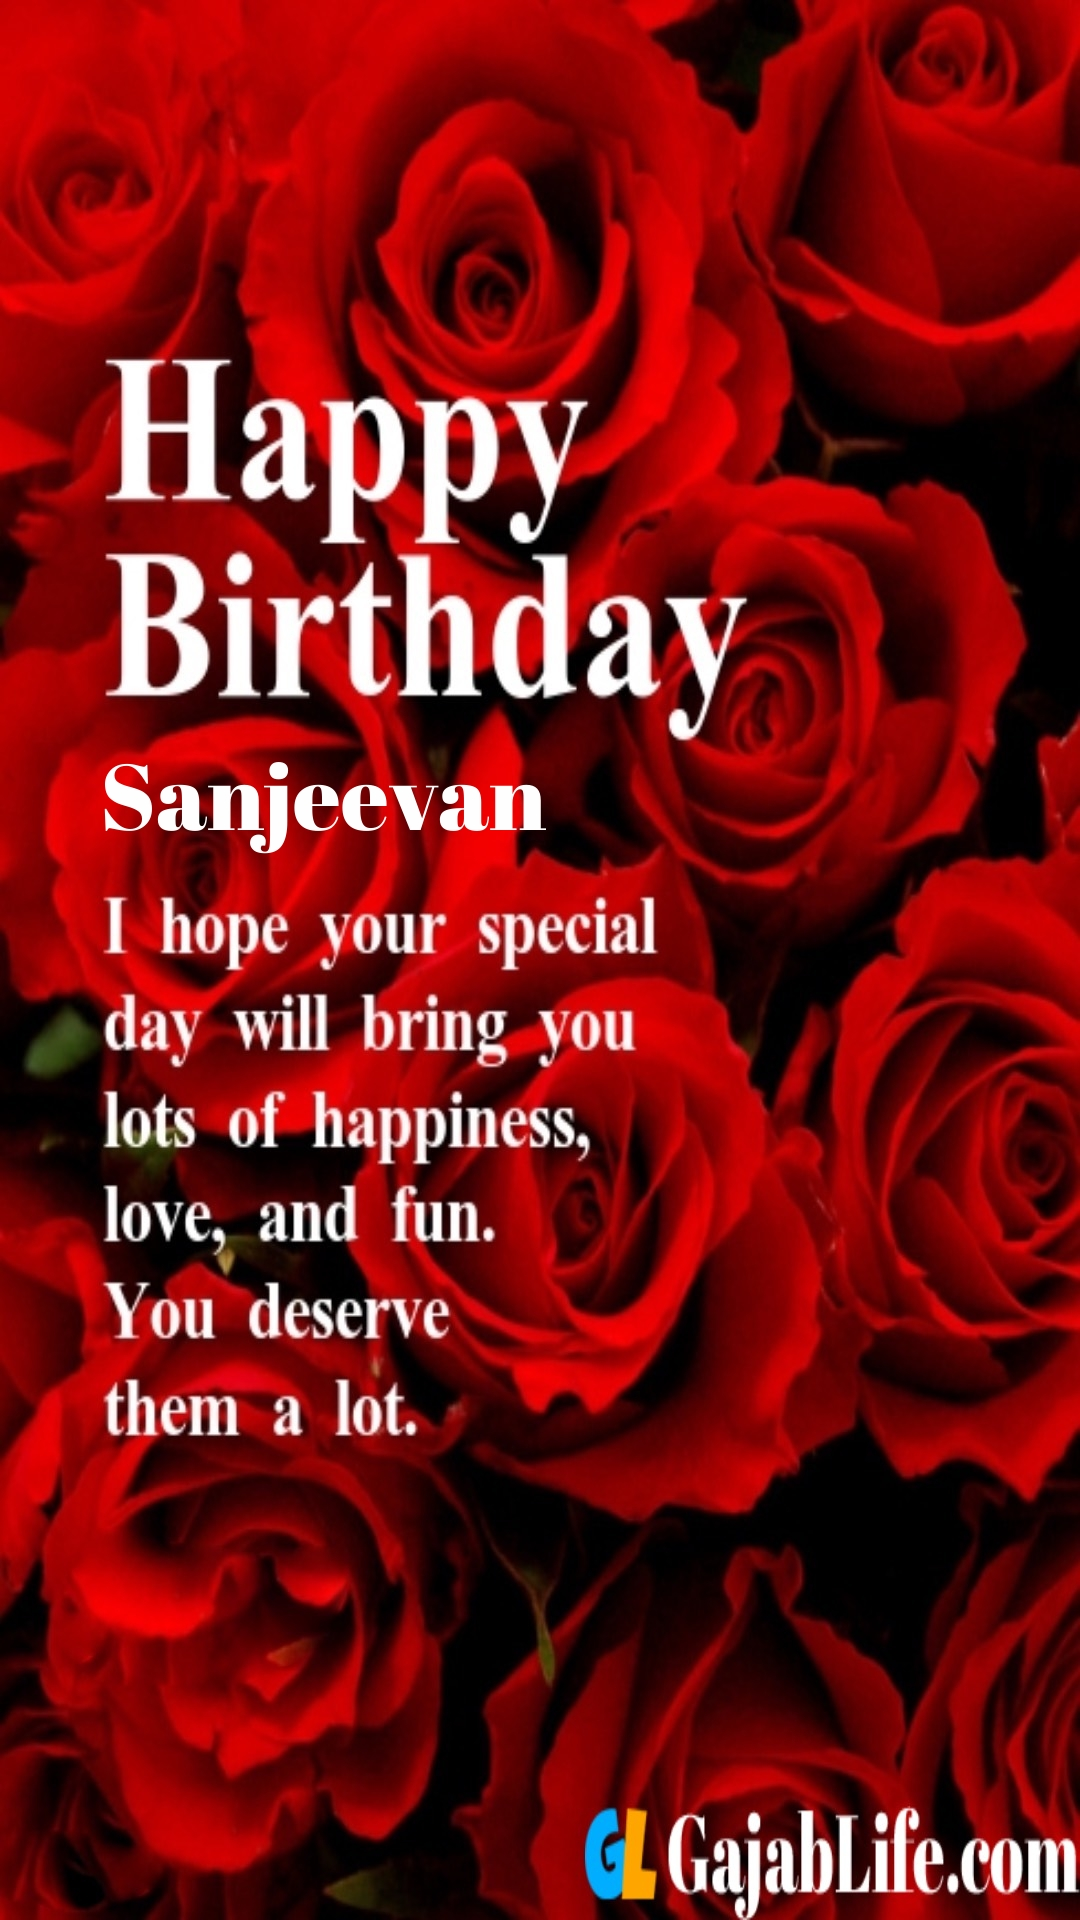 Sanjeevan birthday greeting card with rose & love